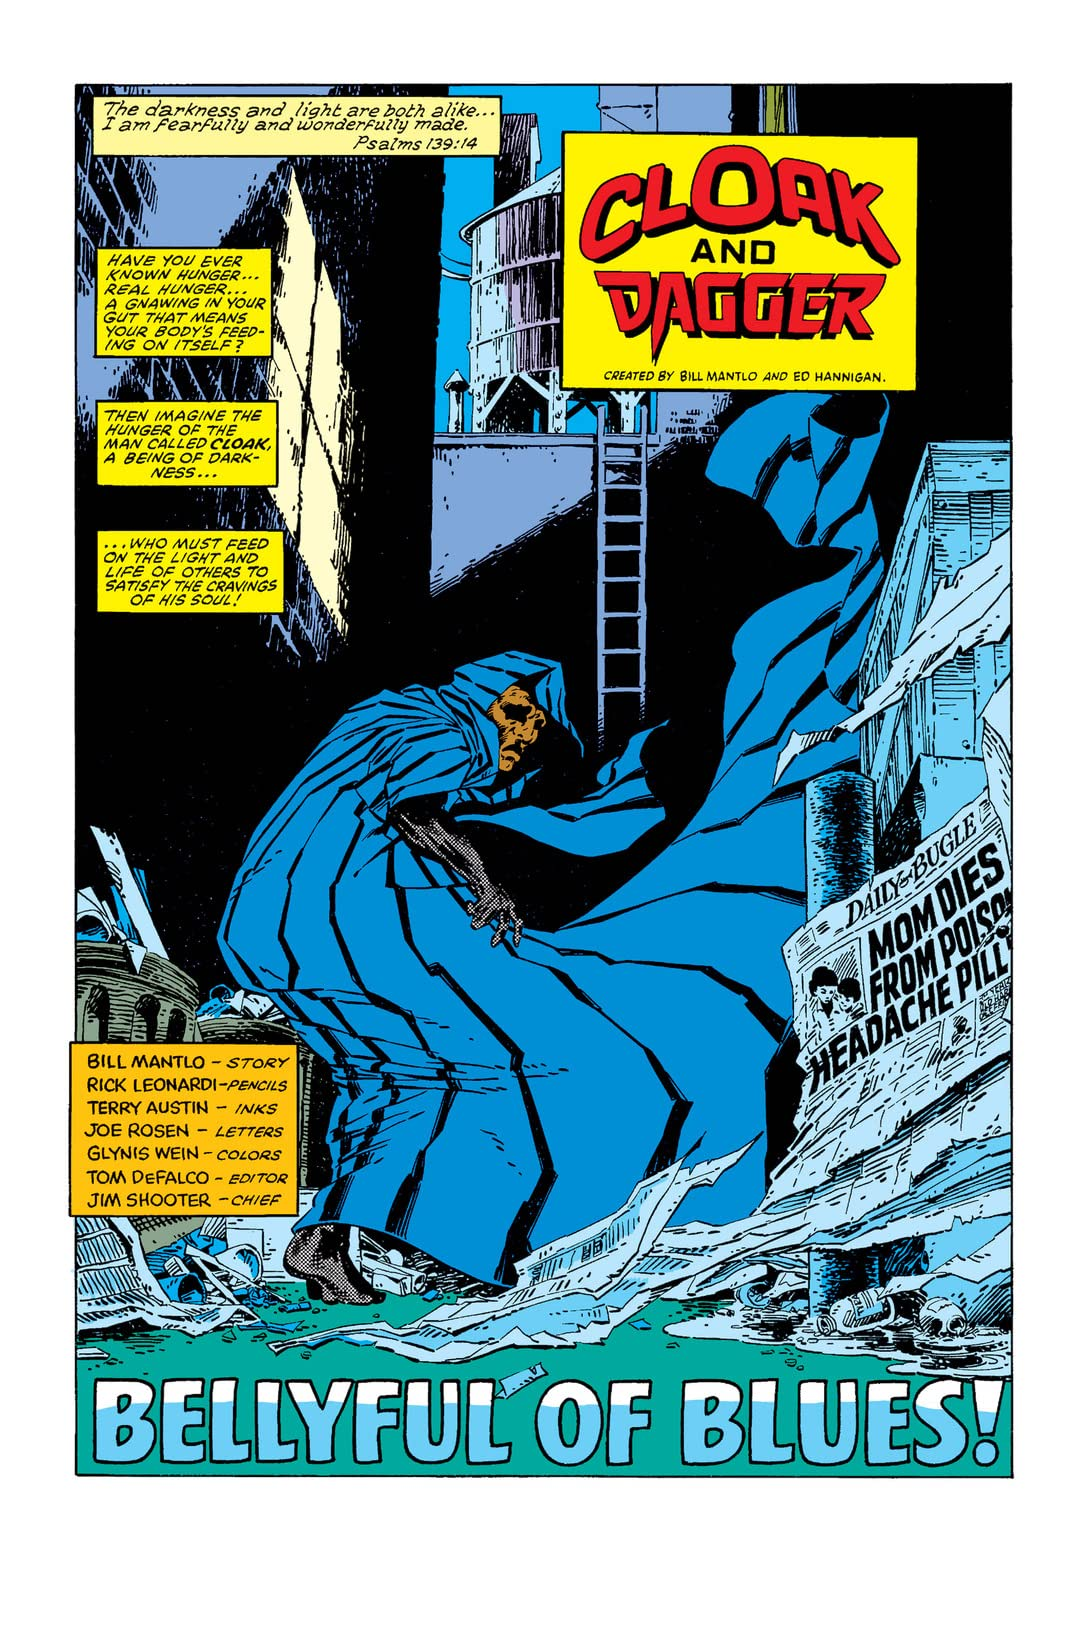 Cloak and Dagger (1983) #2 (of 4)